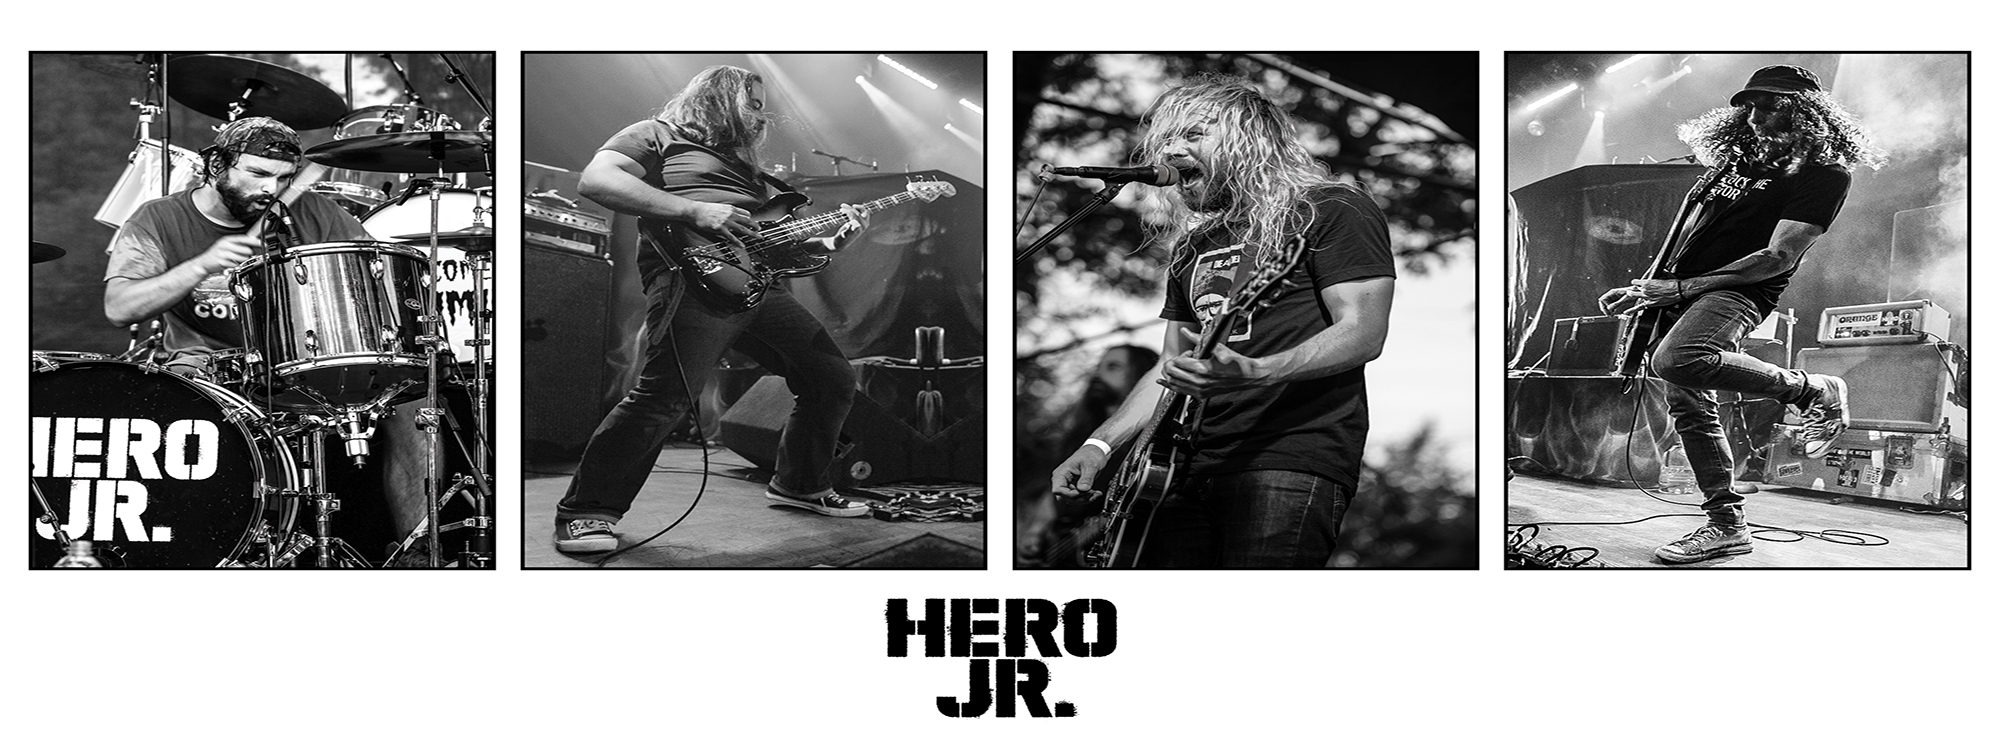 Hero Jr Press Photo Copy